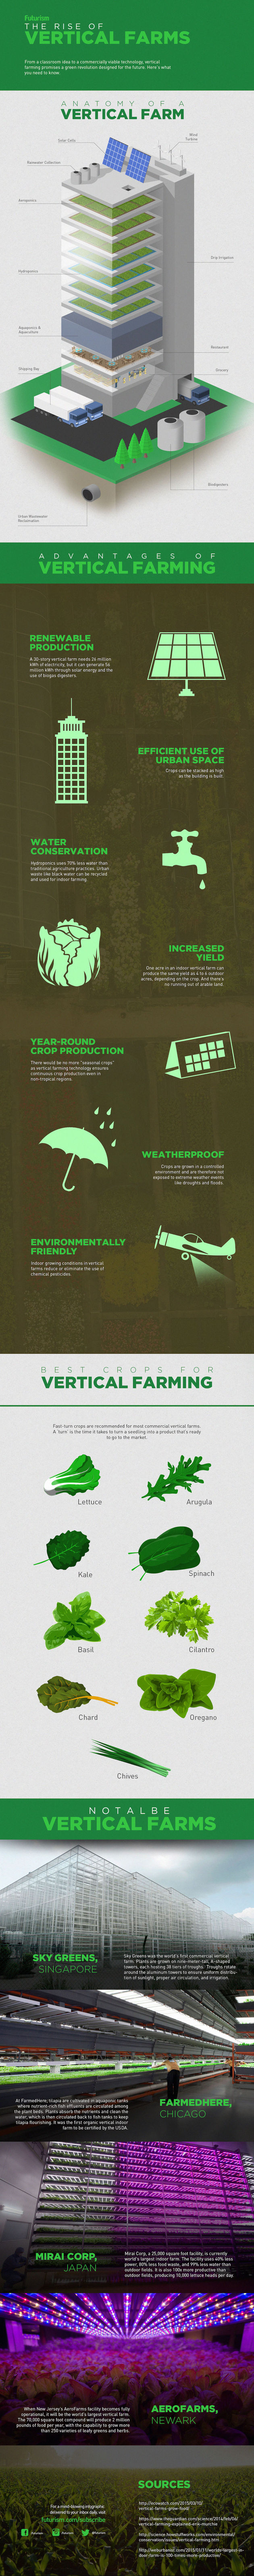 Rise-of-Vertical-Farms_v4-1